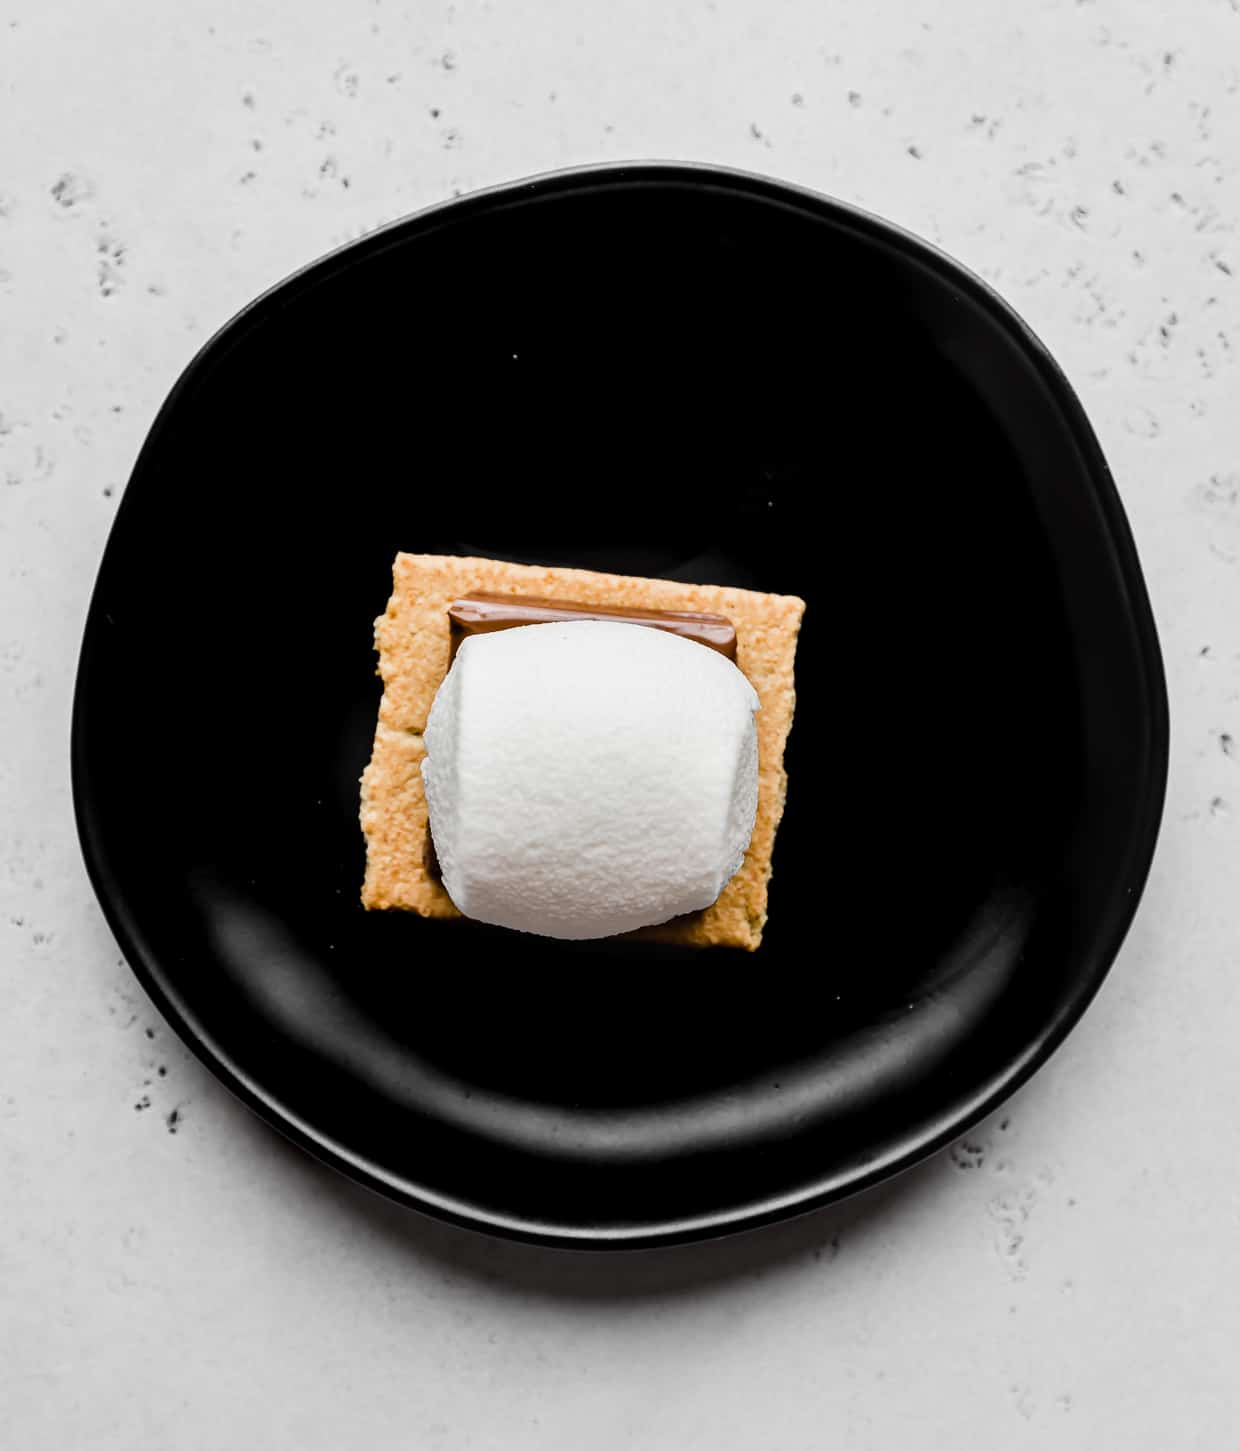 A marshmallow atop a chocolate square that's on top of a graham cracker.